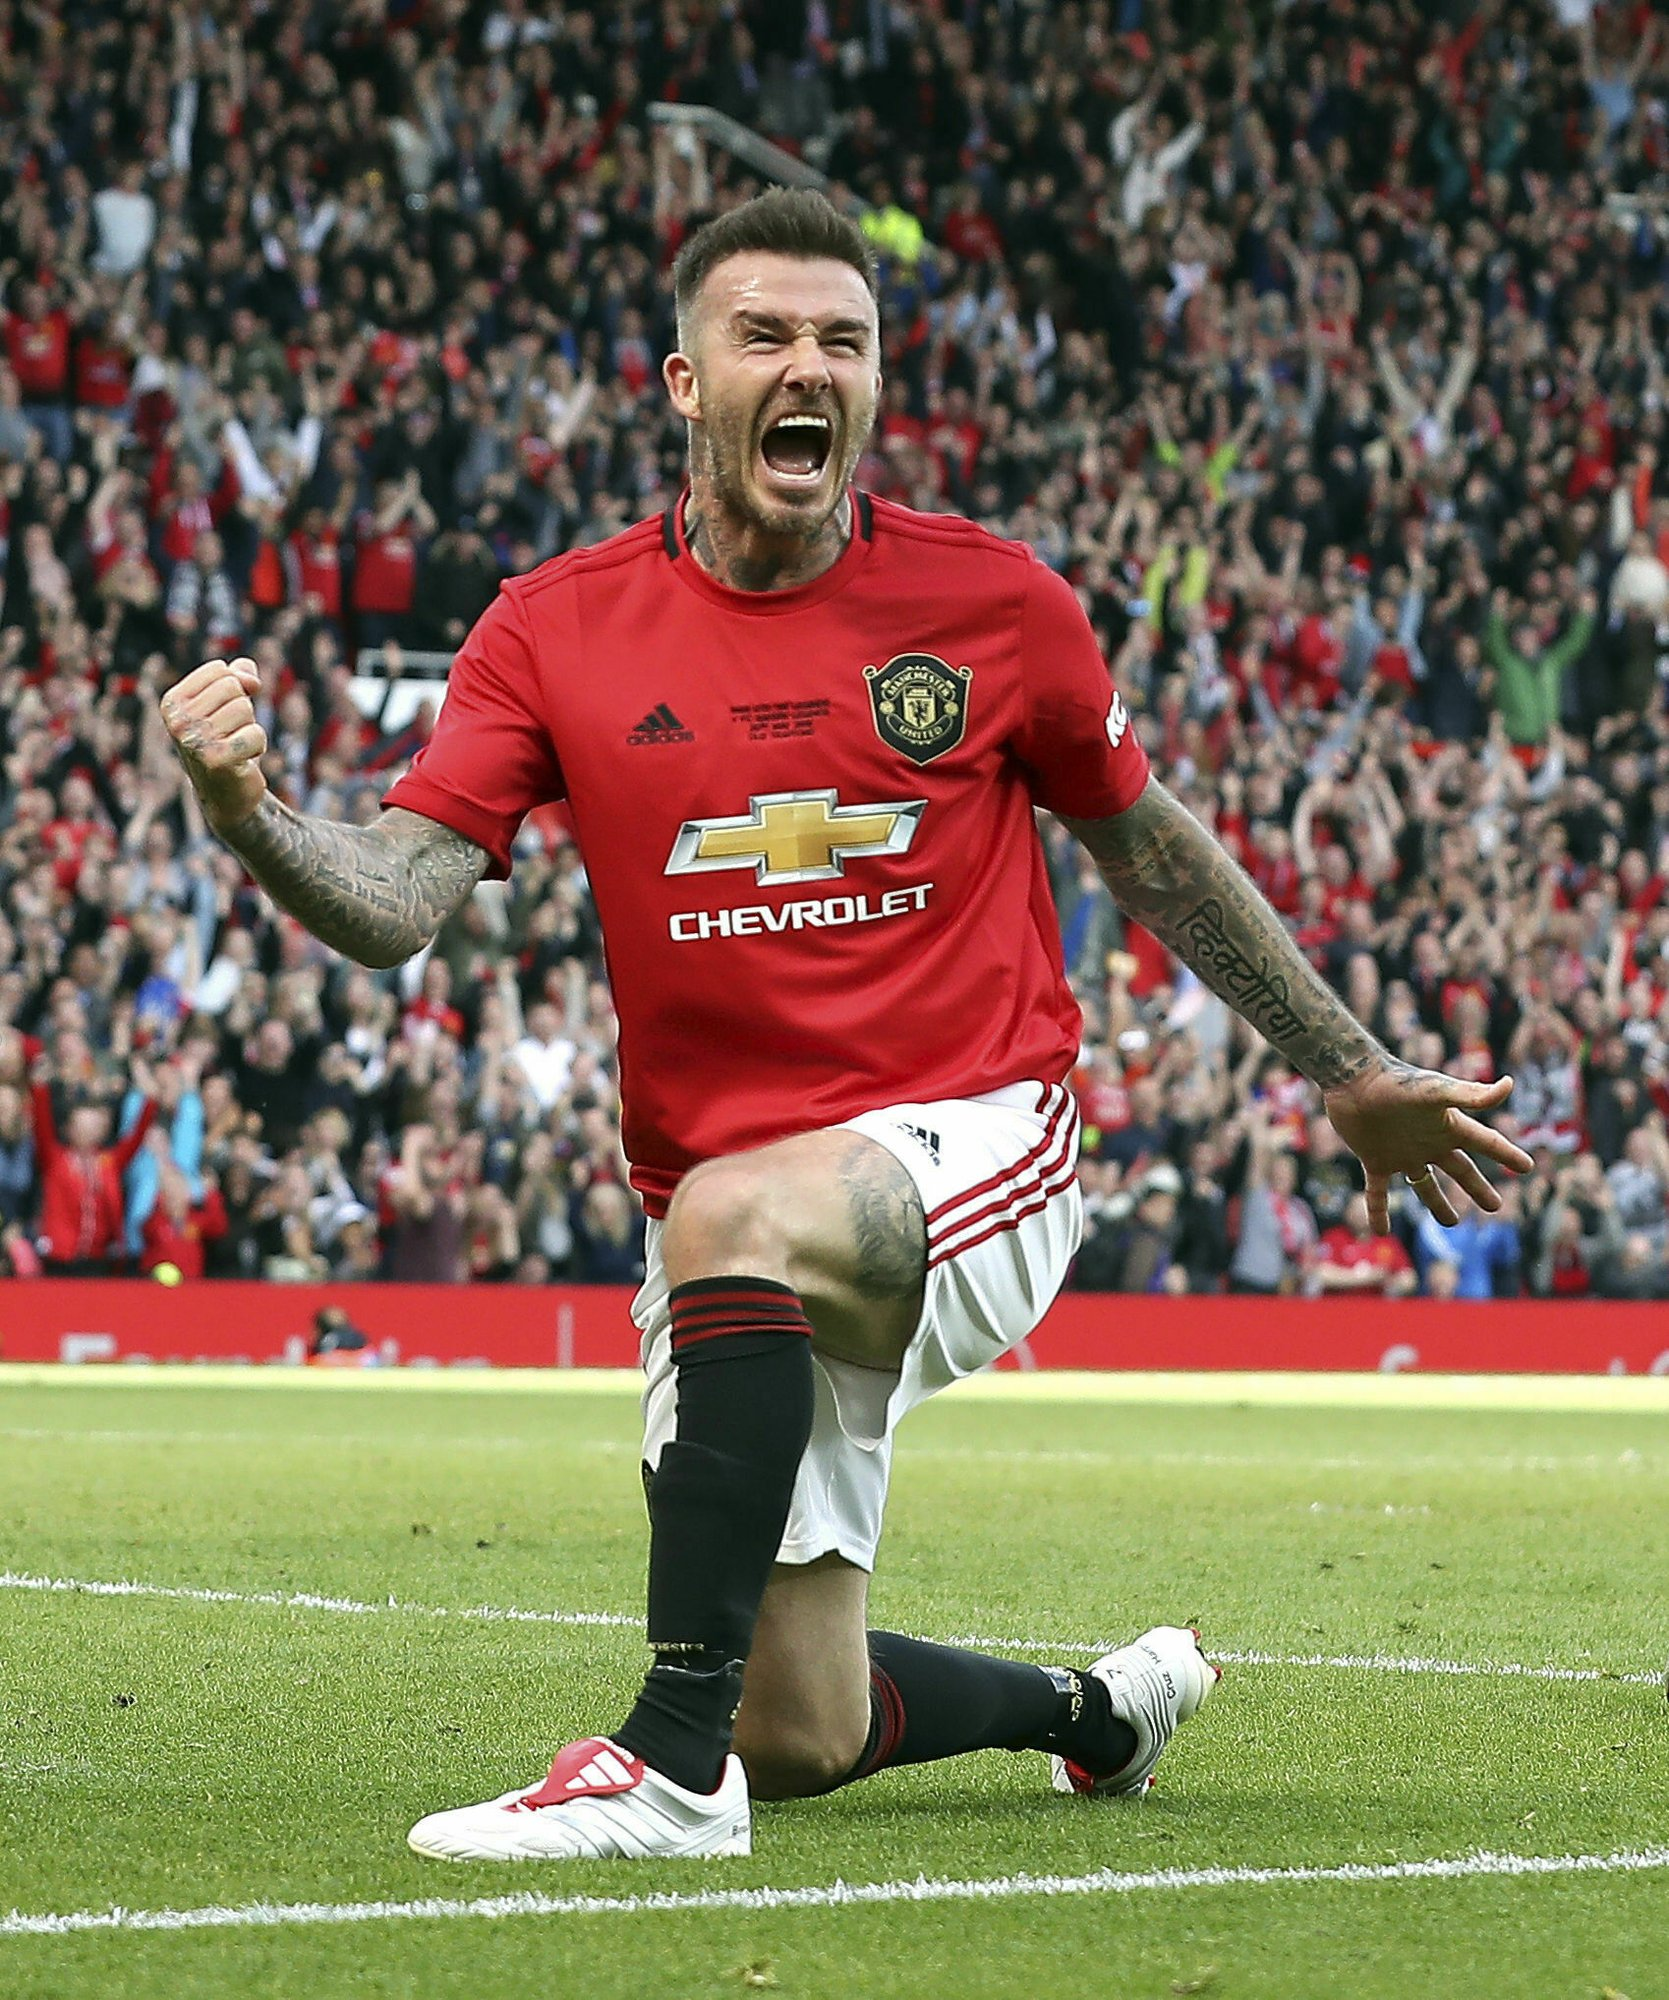 895b067e2 Beckham scores as United faces Bayern 20 years after CL win